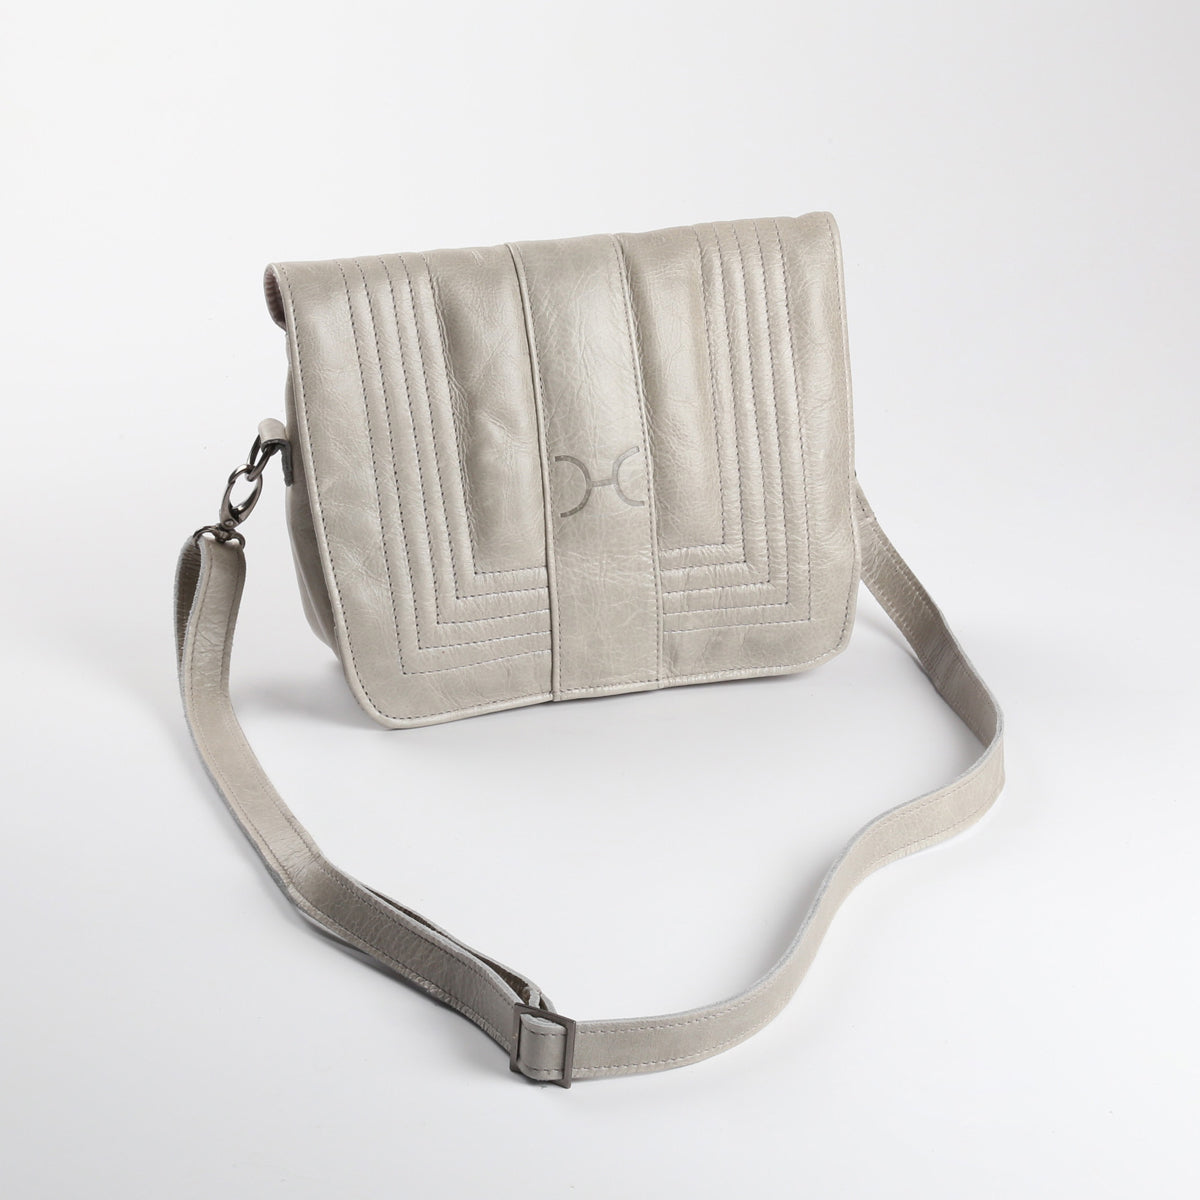 Thandana Katy Sling - Grey - Zufrique Boutique